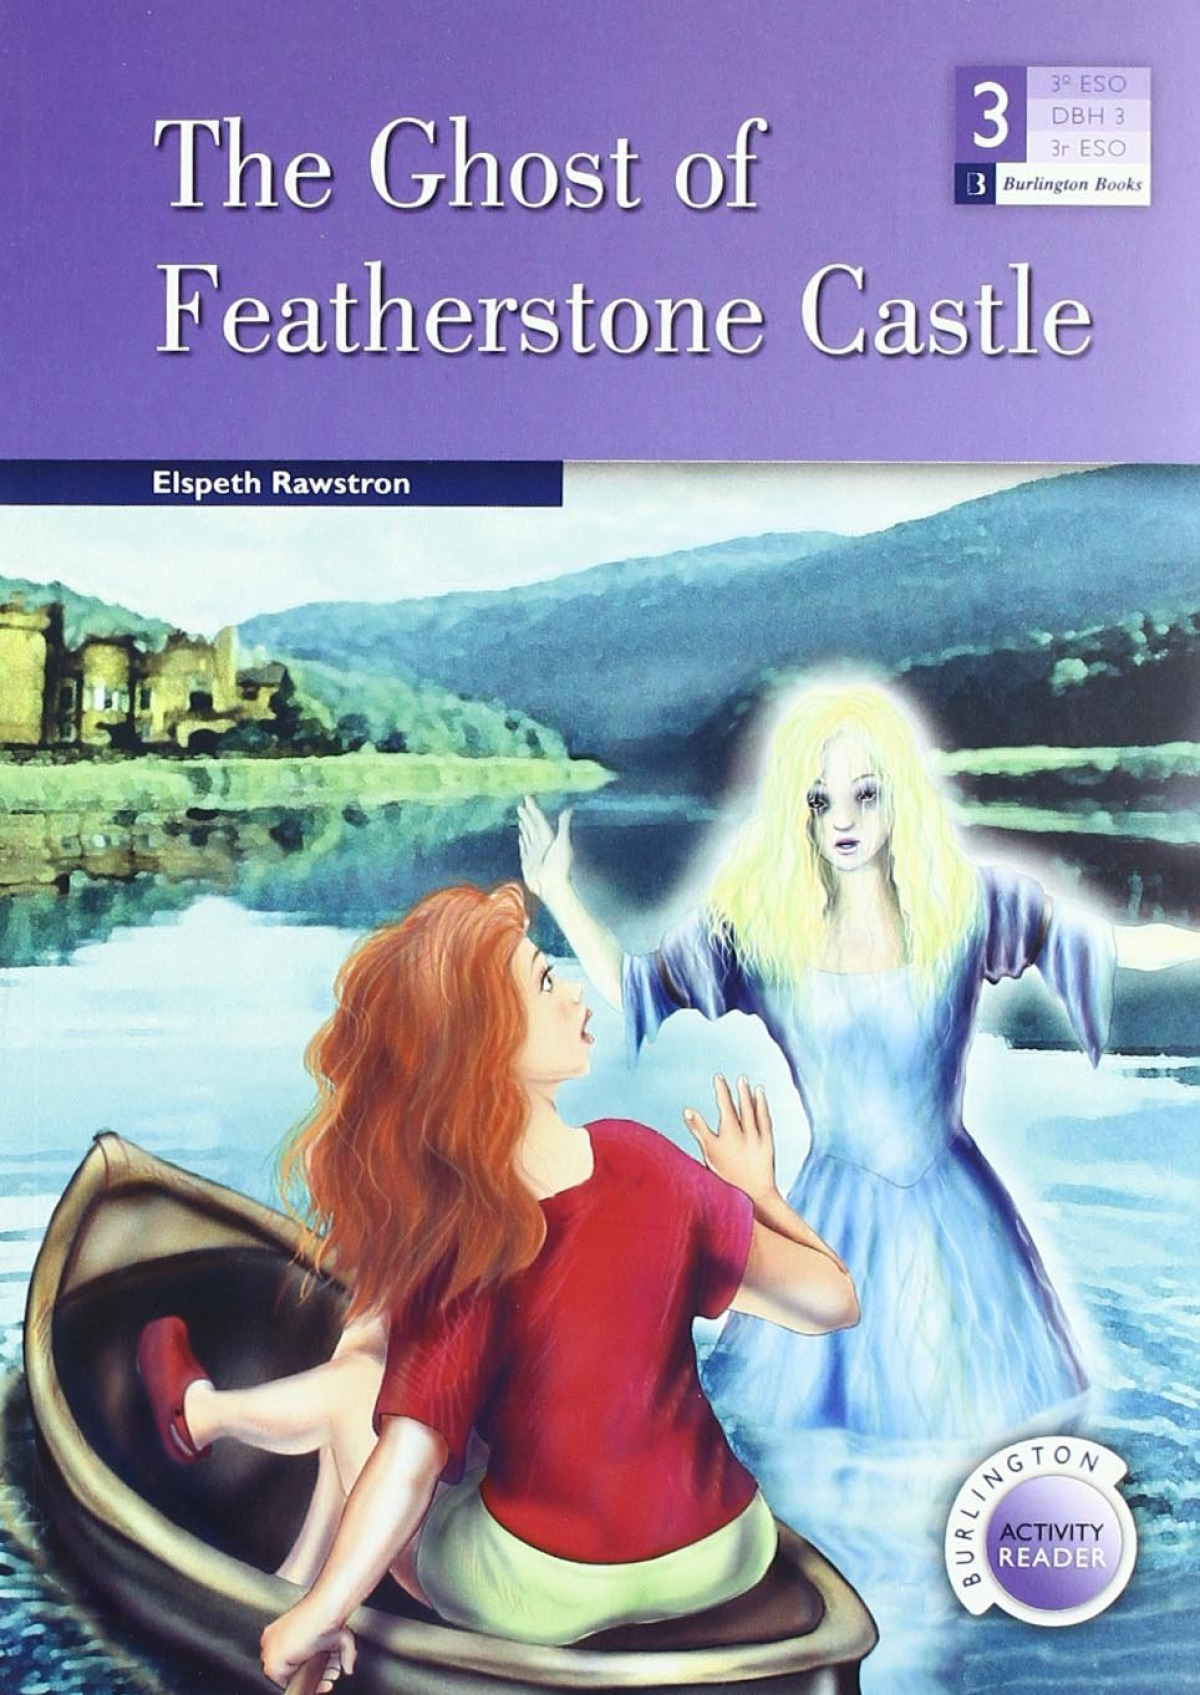 The Ghost of featherstone castle 9789963475537